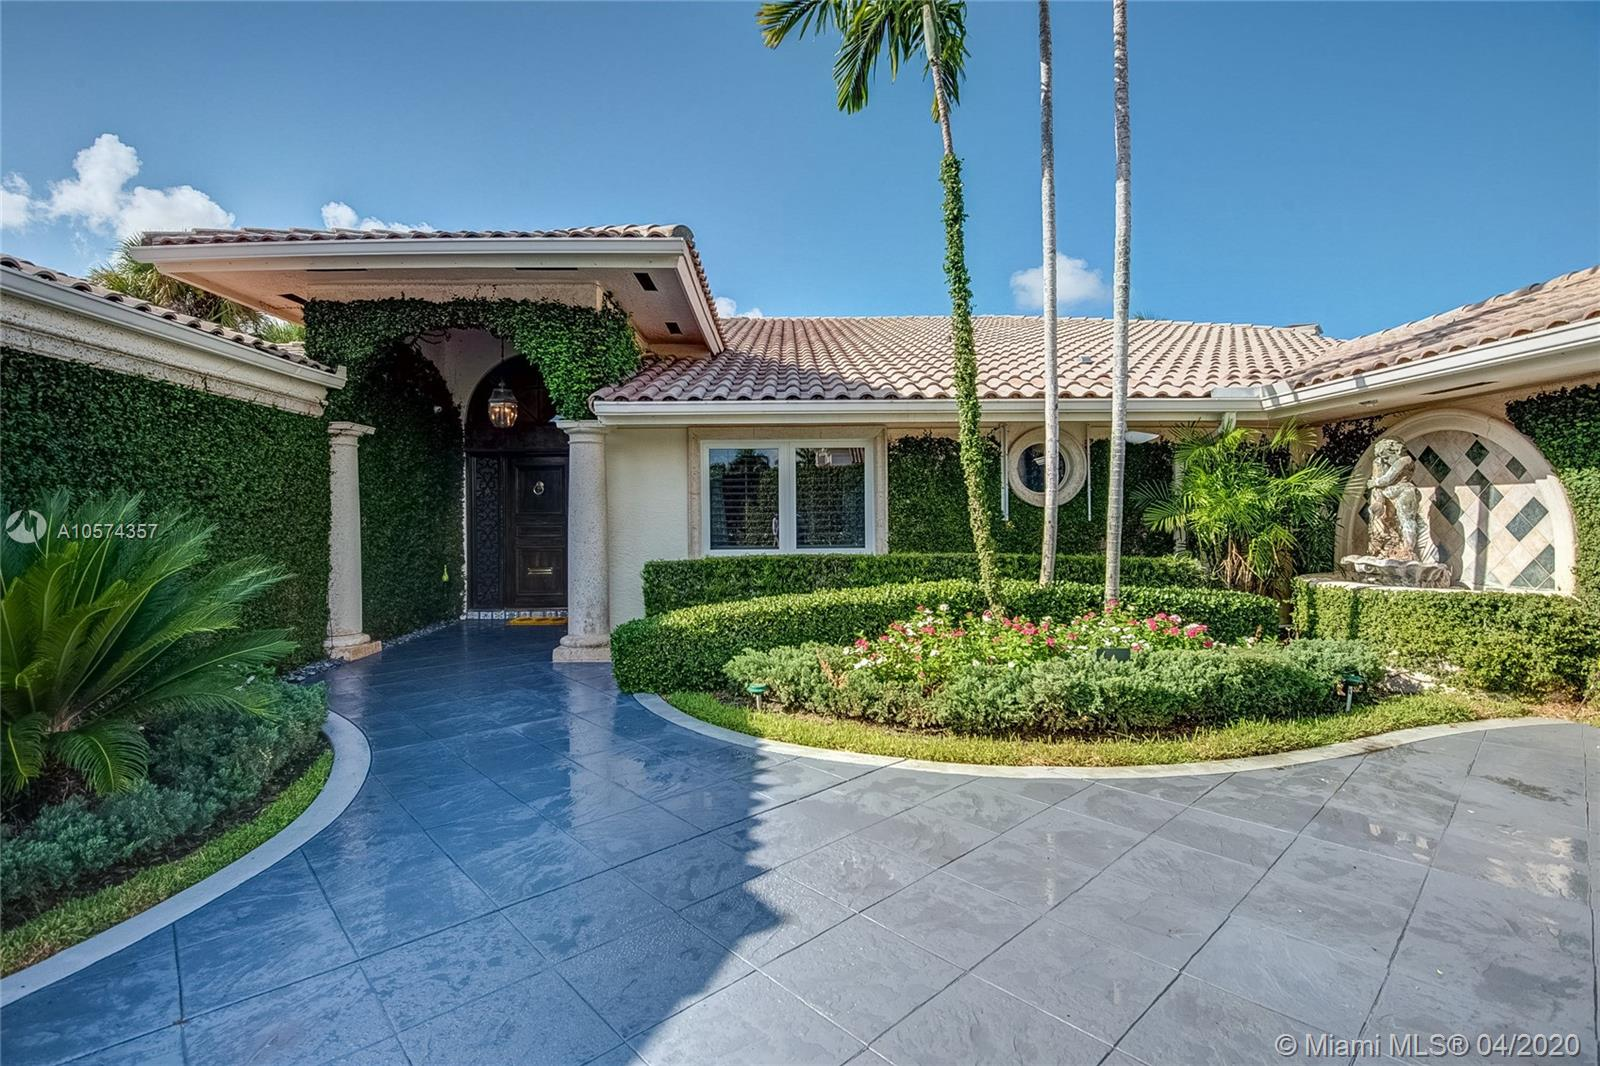 image #1 of property, Royal Palm Yacht Countr